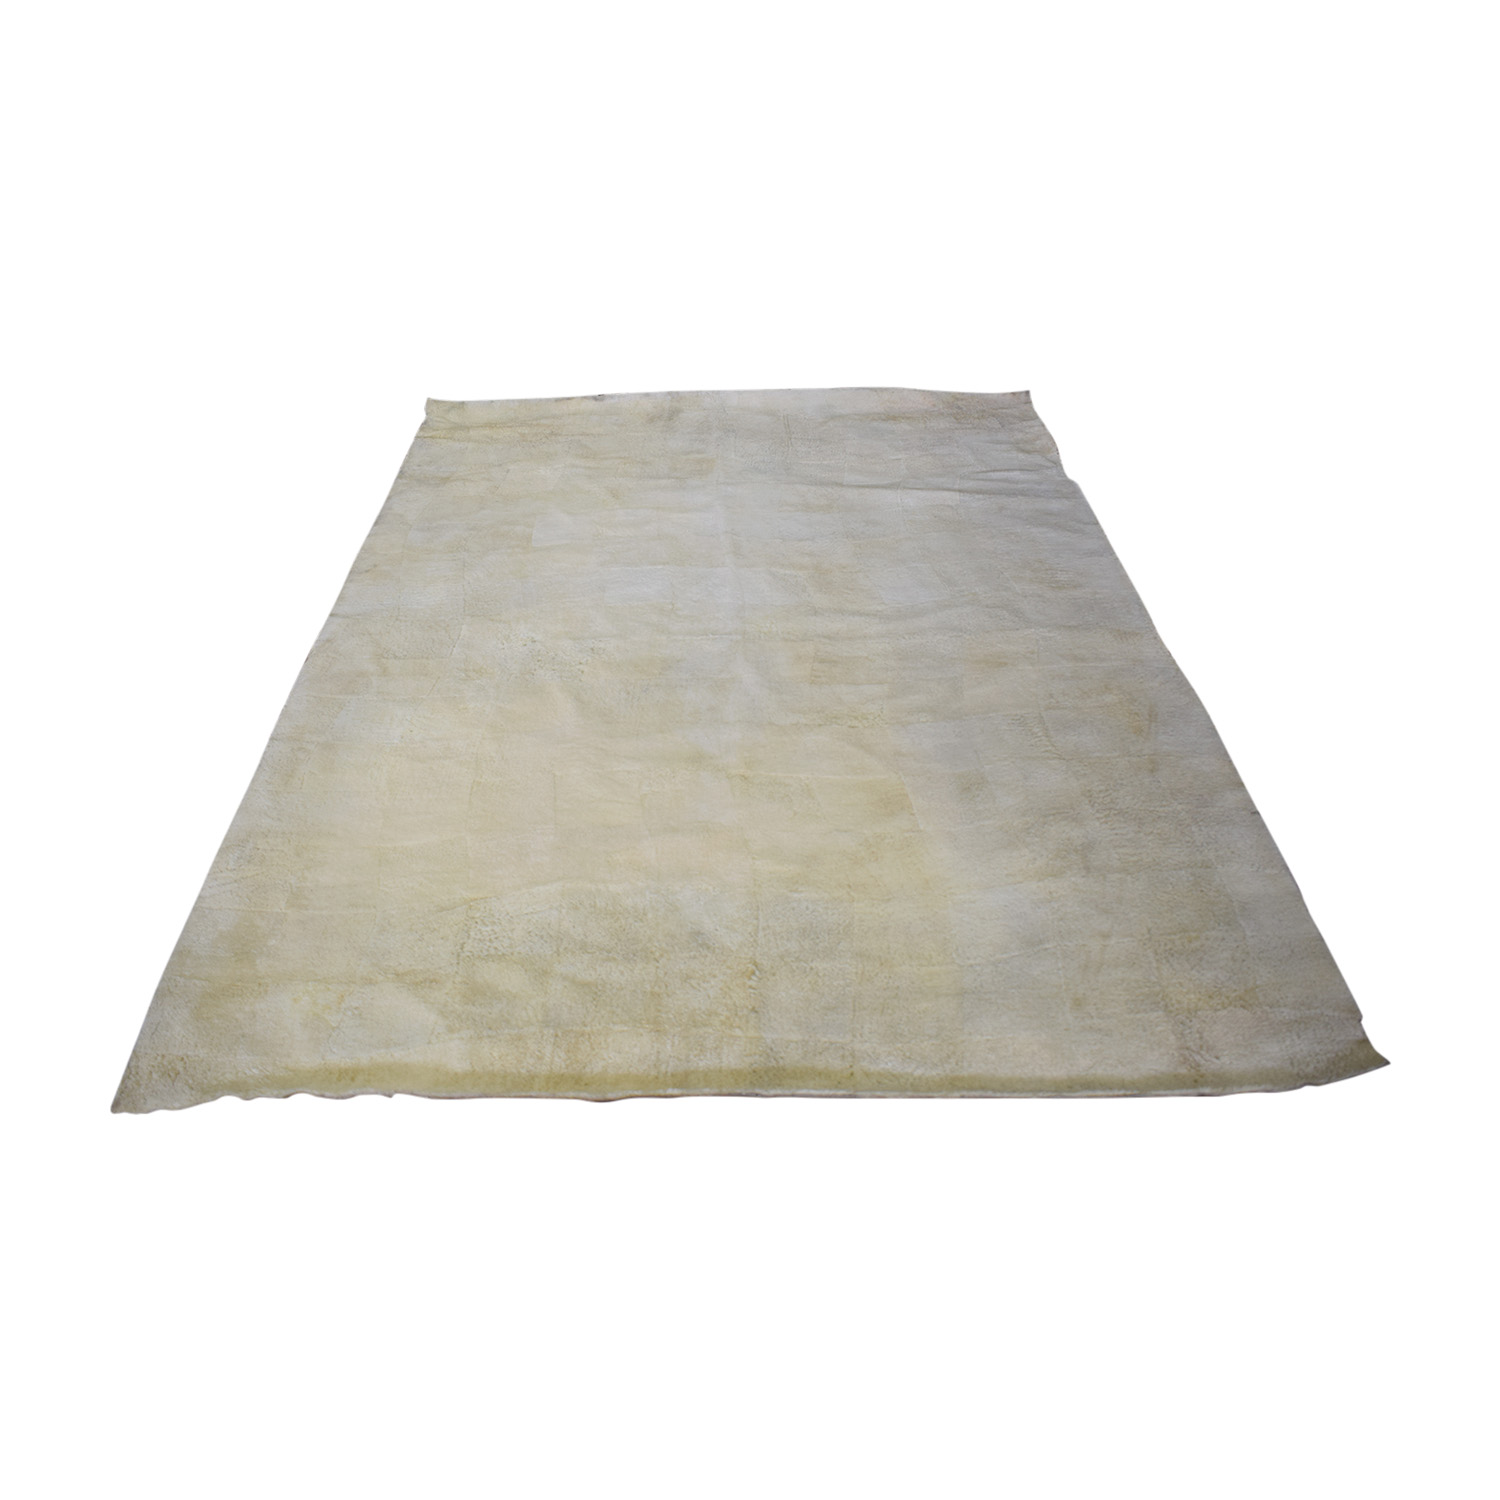 Hanssem Hanssem Lambs Wool Rug off white